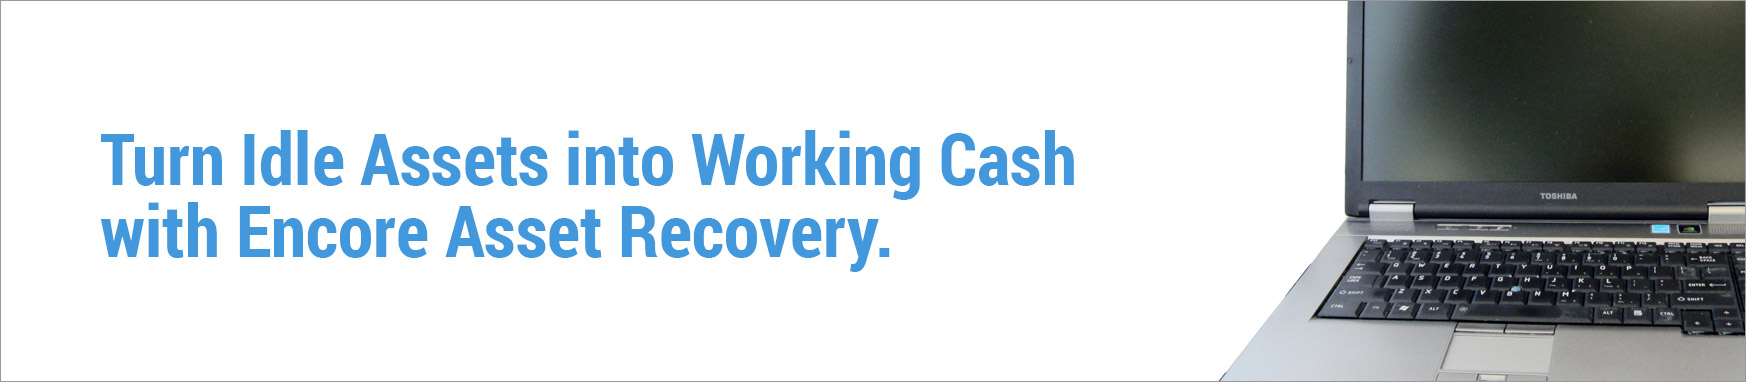 Turn Idle Assets into Working Cash with Encore Asset Recovery.